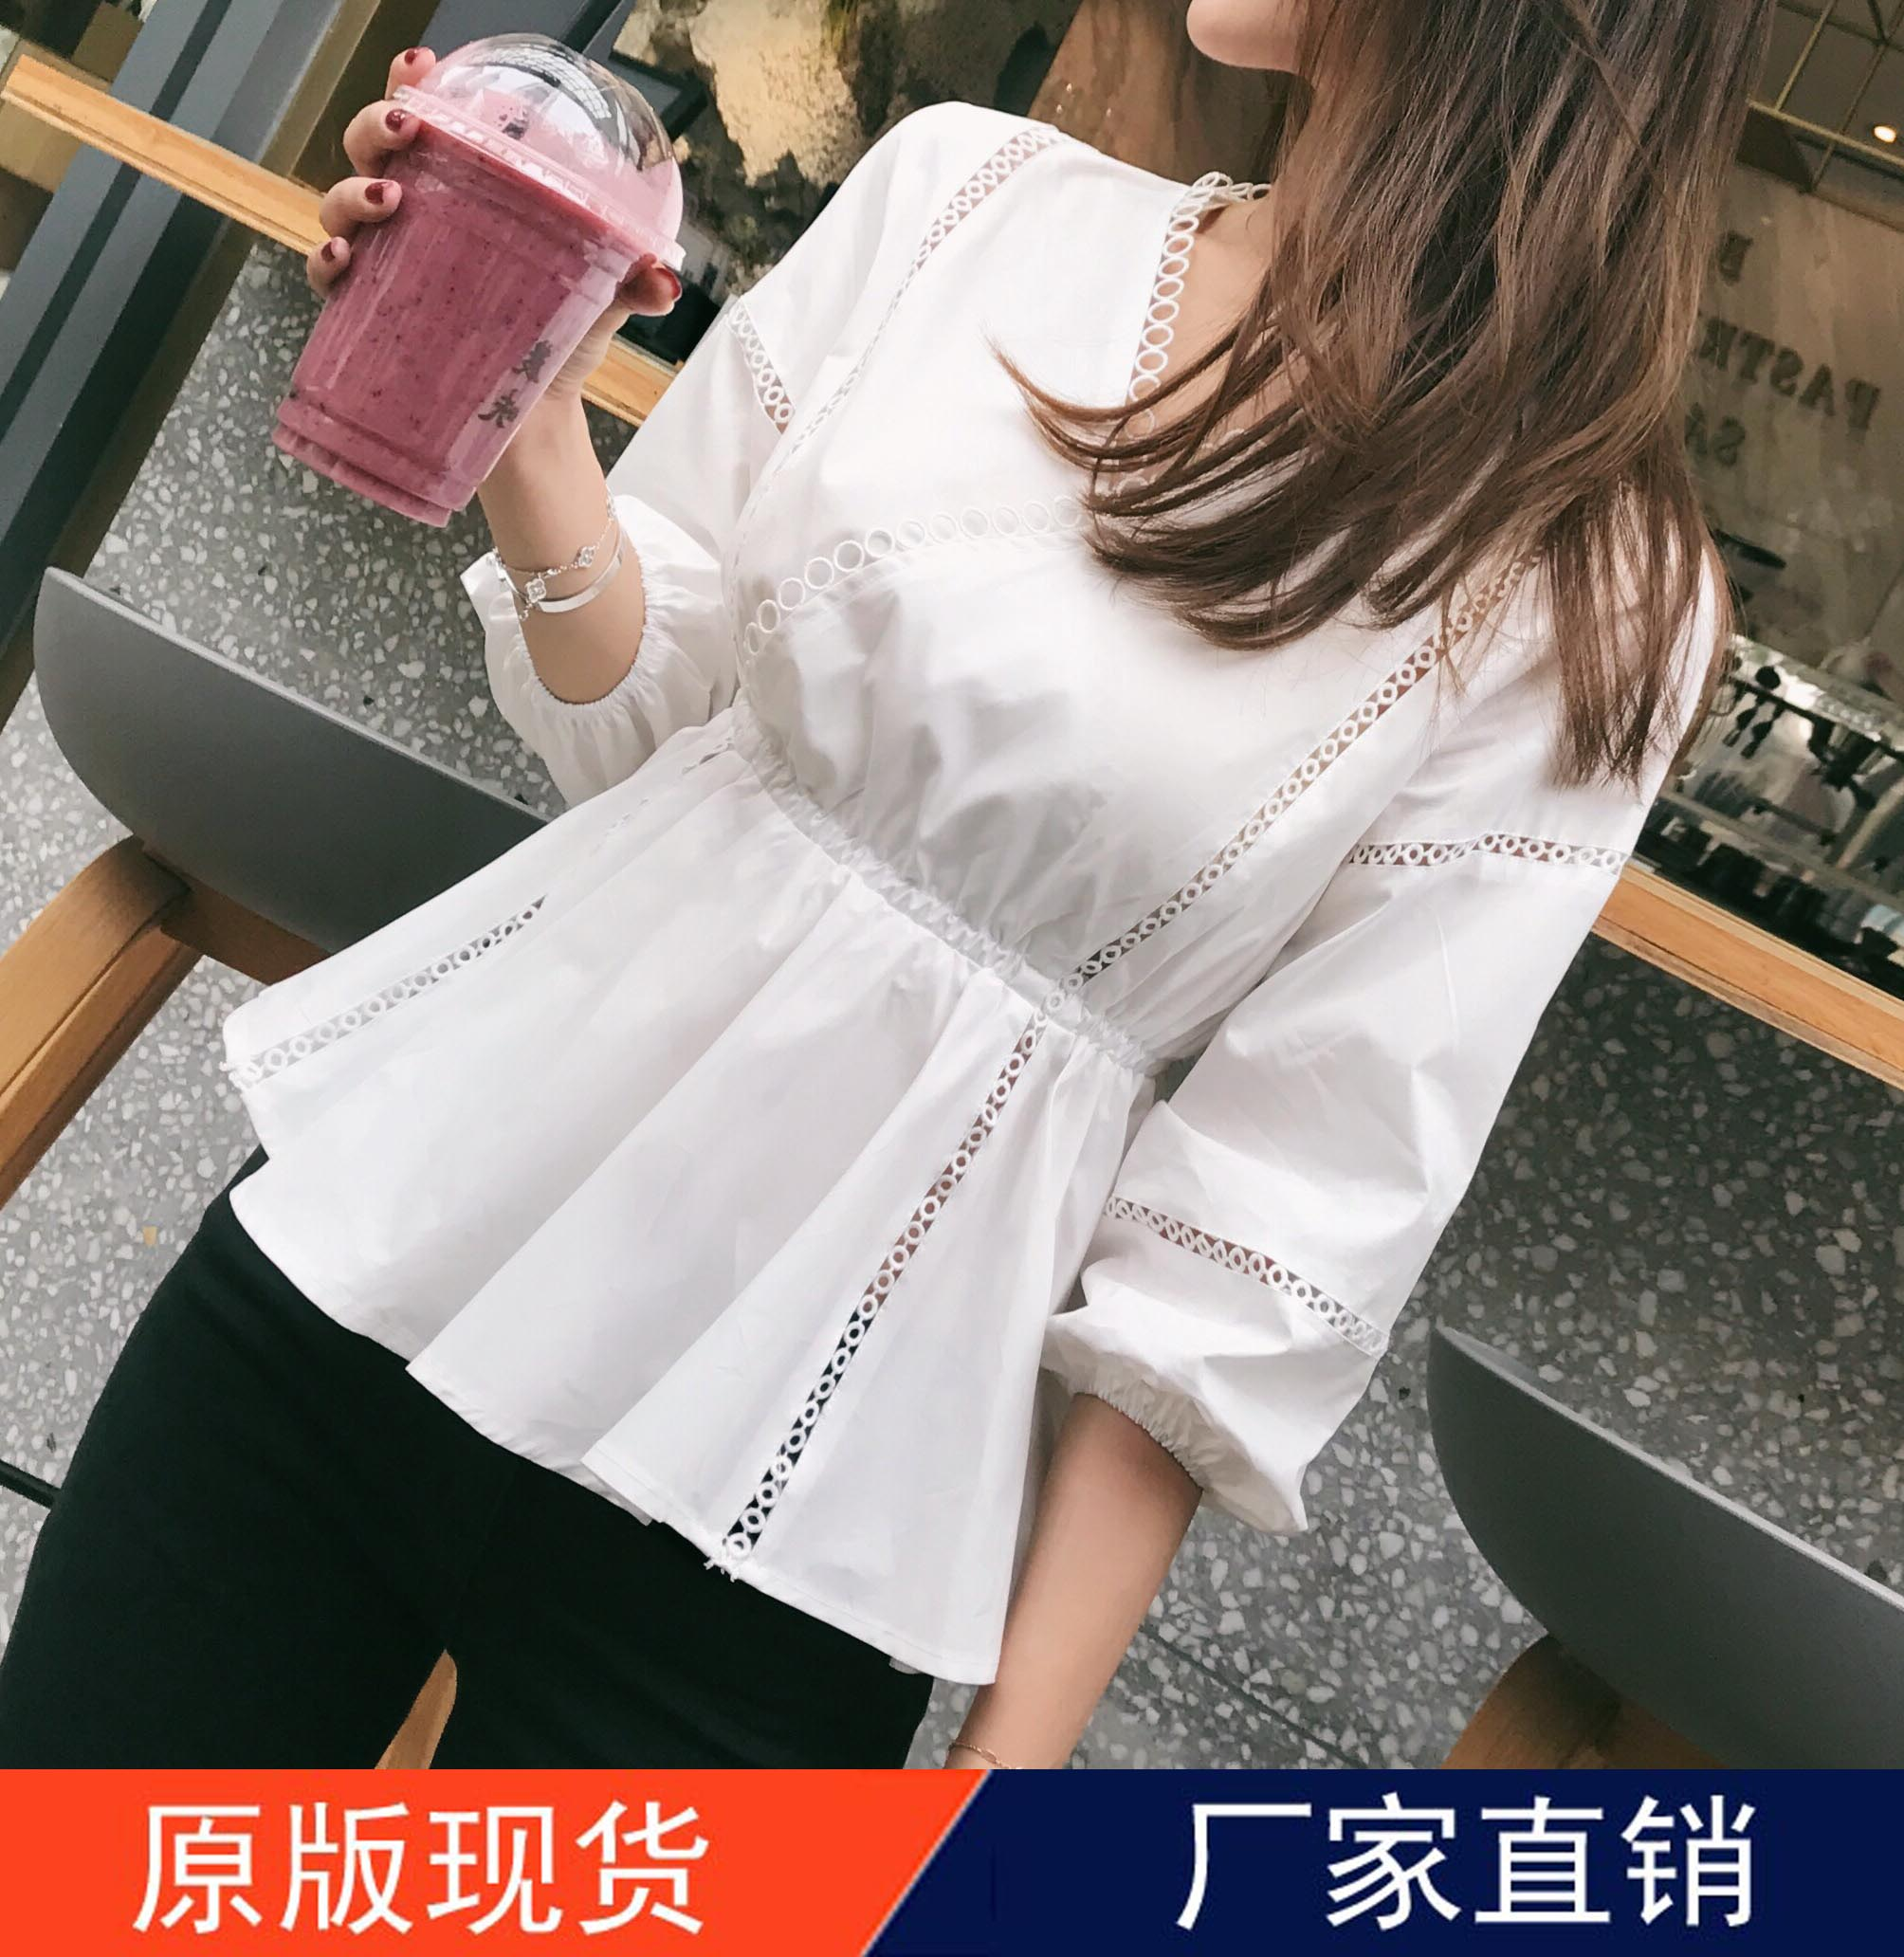 Meimeis summer: 2017 summer new product V-neck with pearl edge and medium sleeve leisure hollow blank shirt blouse